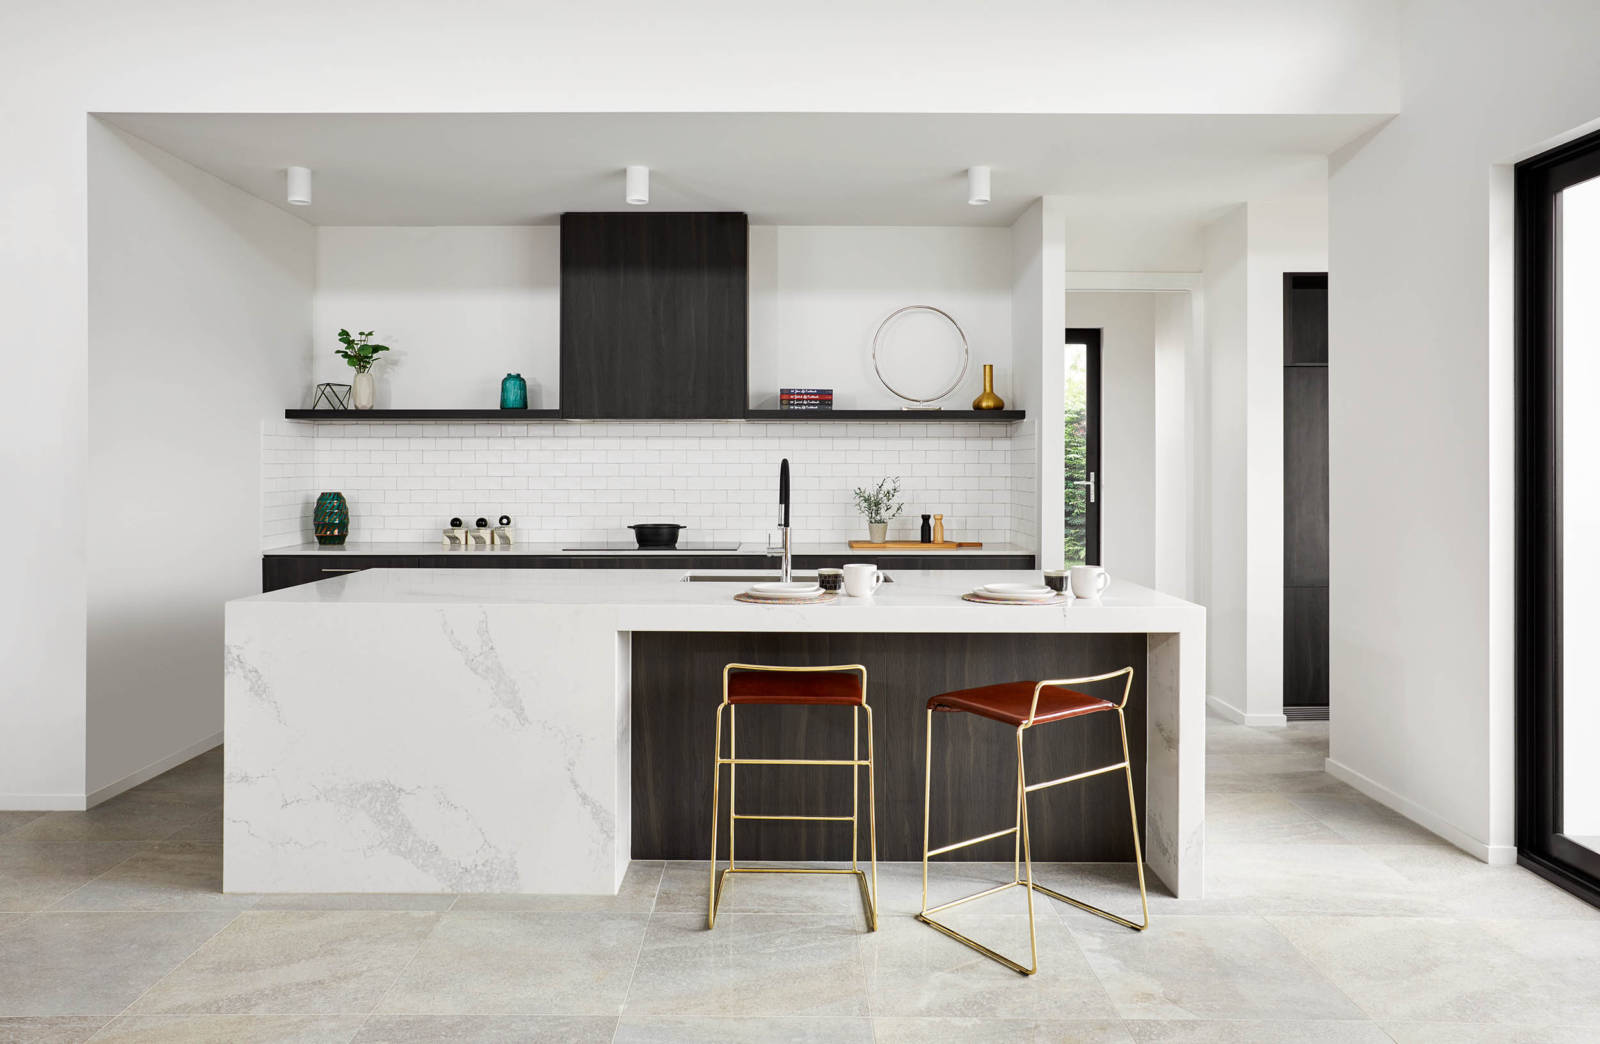 Caesarstone suppliers Sydney